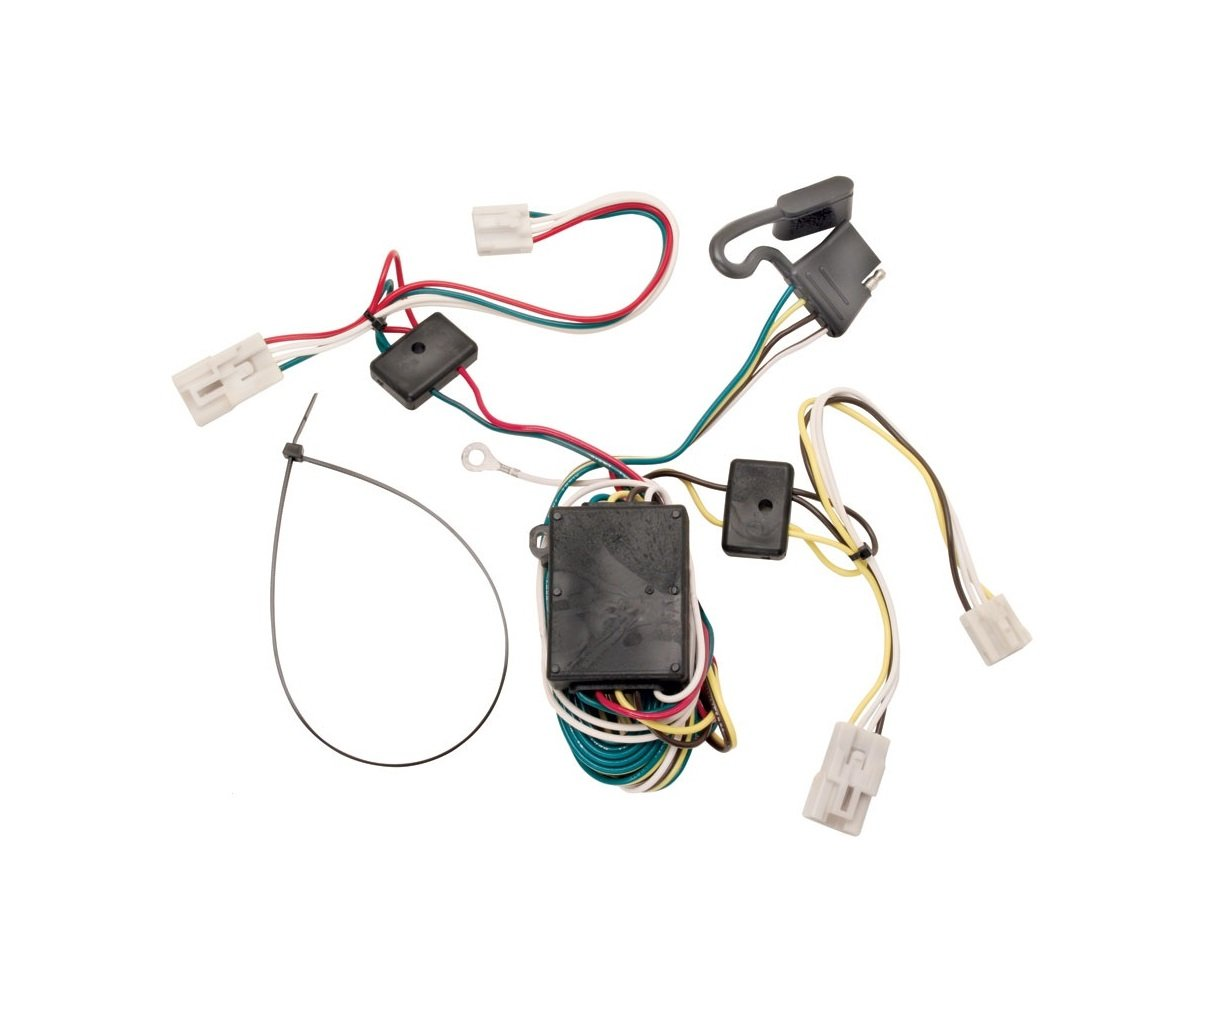 Best Rated In Automotive Replacement Electrical Wiring Harnesses Trailer Harness Diagram Besides Flat Tow Jeep Wrangler Tekonsha 118304 T One Connector Assembly With Converter Product Image